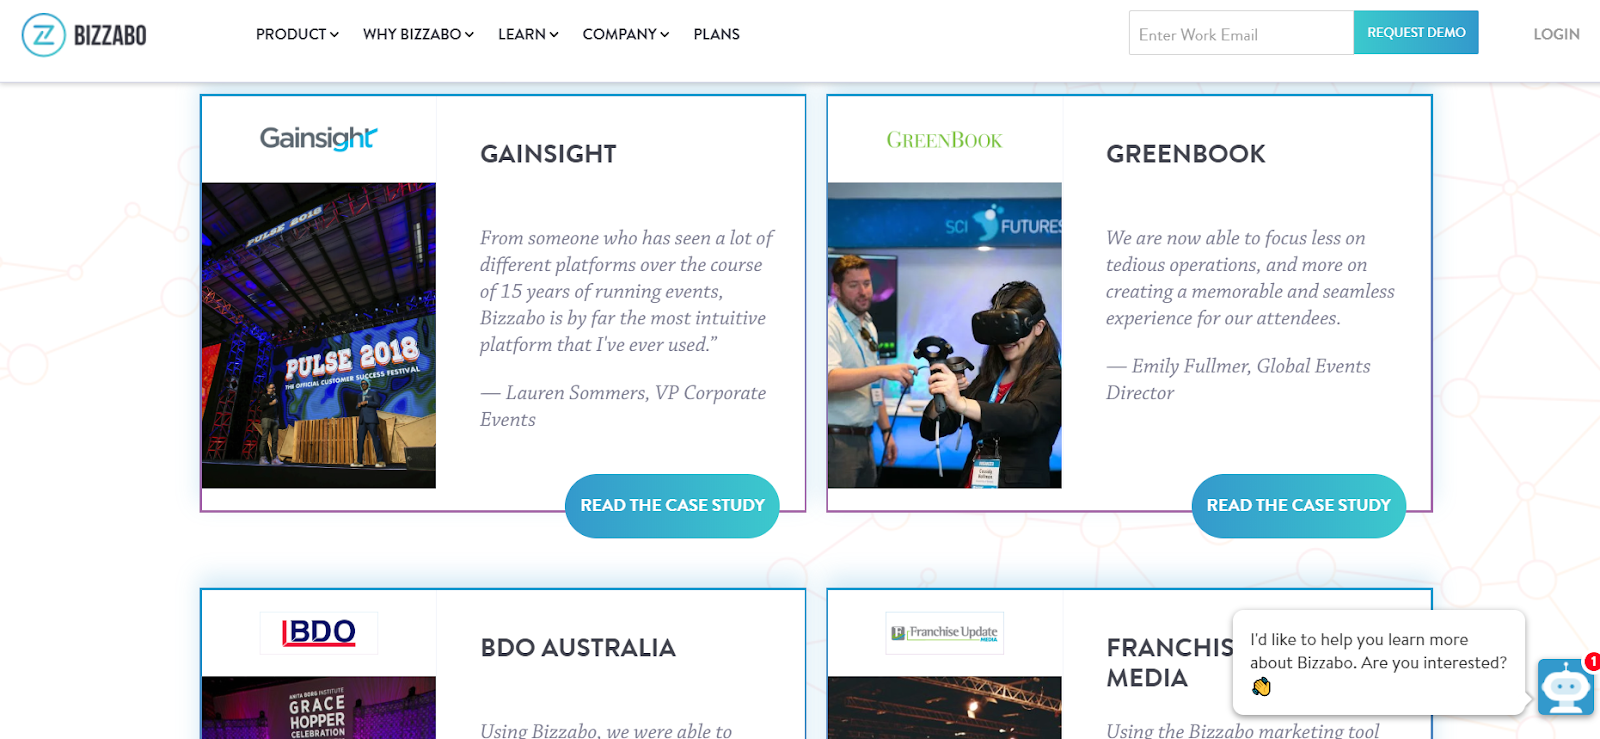 Bizzabo's case studies and video testimonial page highlights it's strengths.